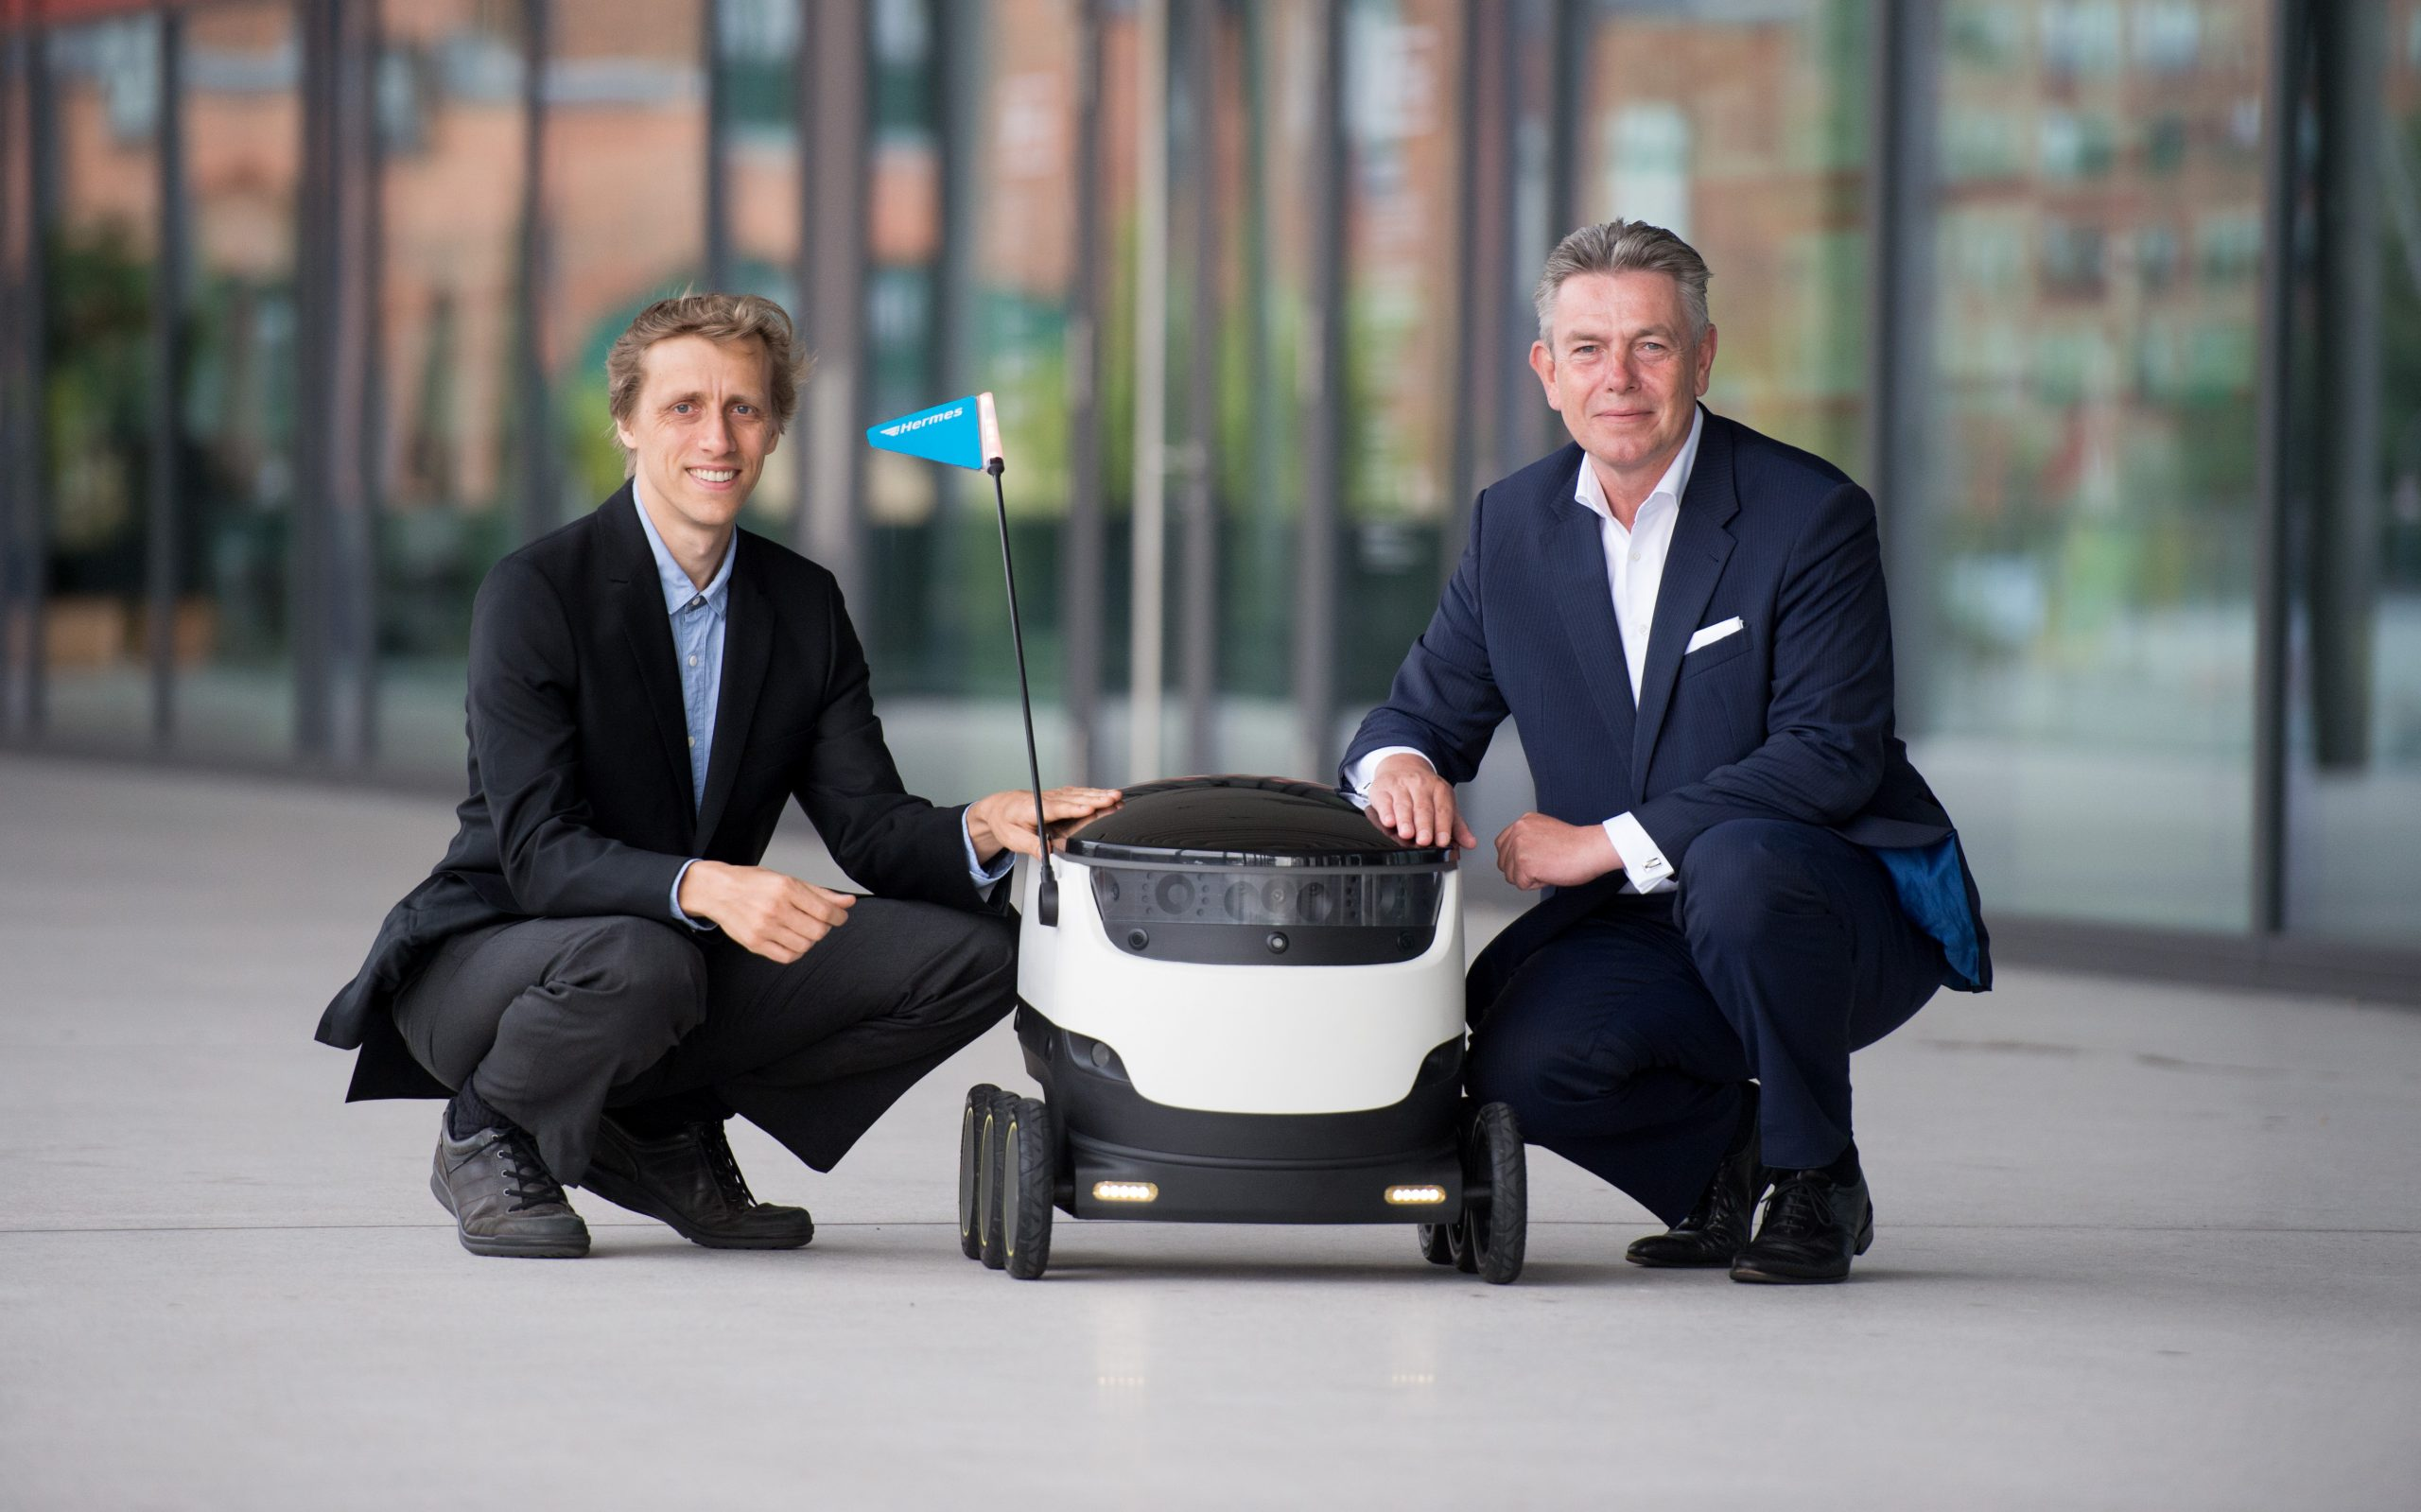 Hermes and Starship to start delivery robot tests this month